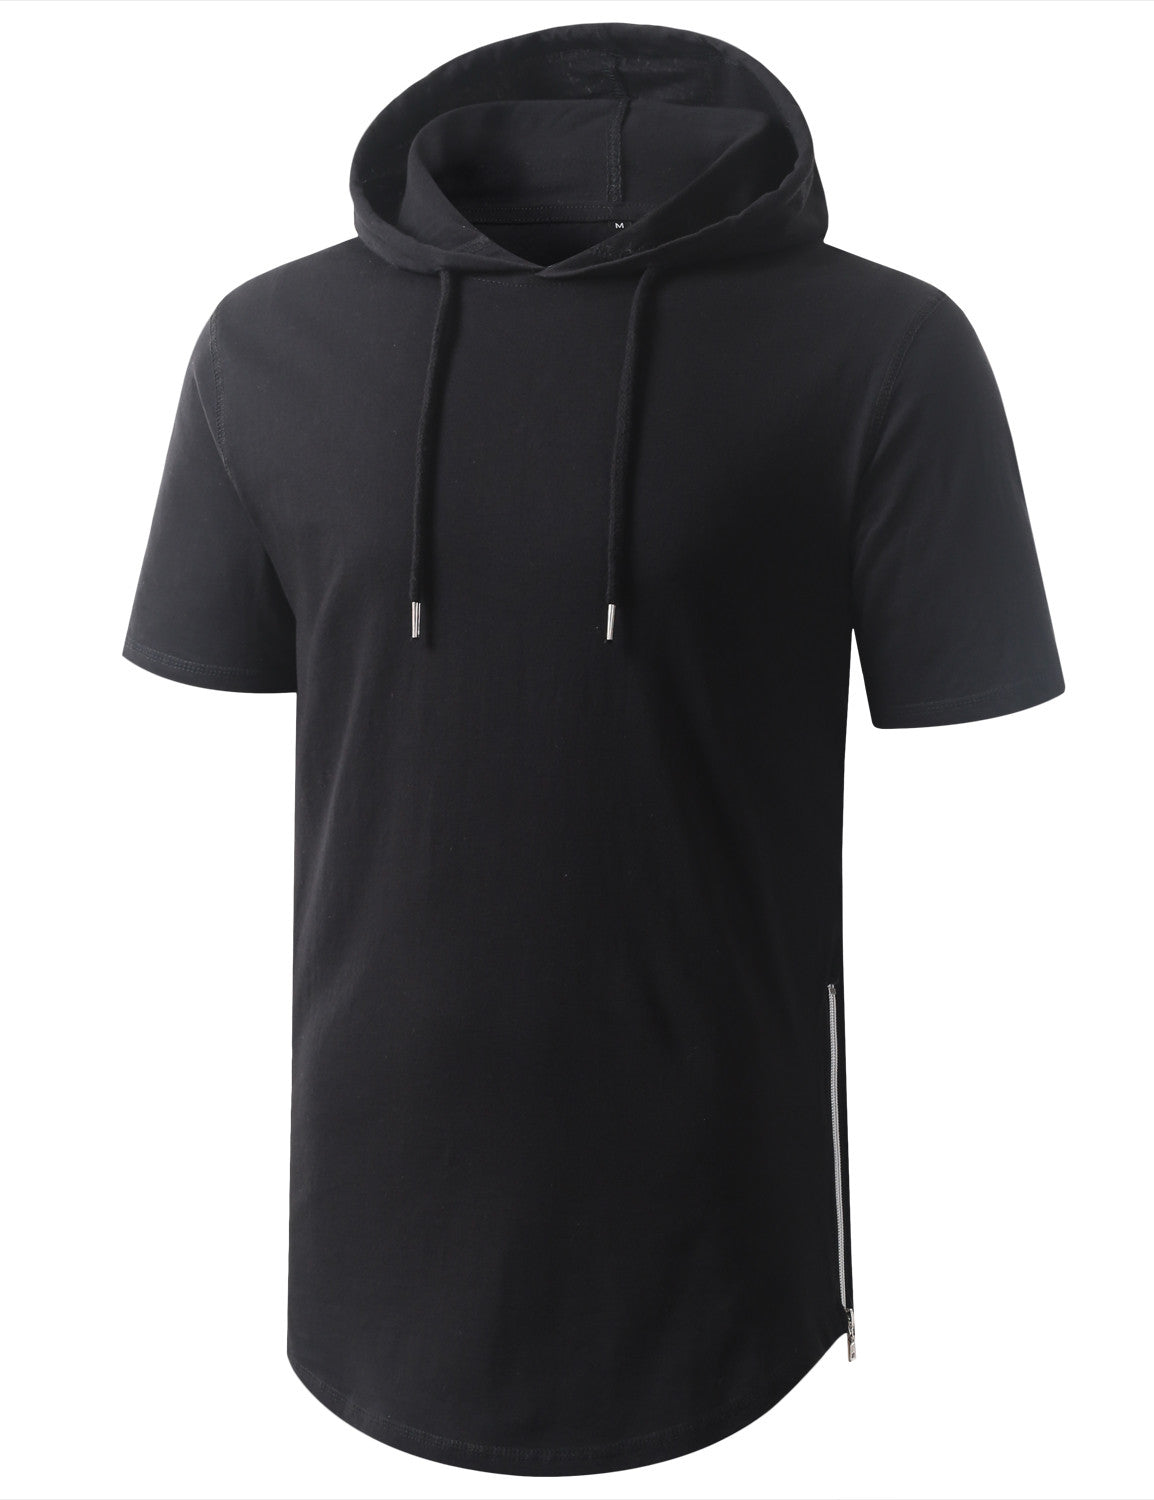 BLACK Longline Short Sleeve Hoodie with Side Zipper